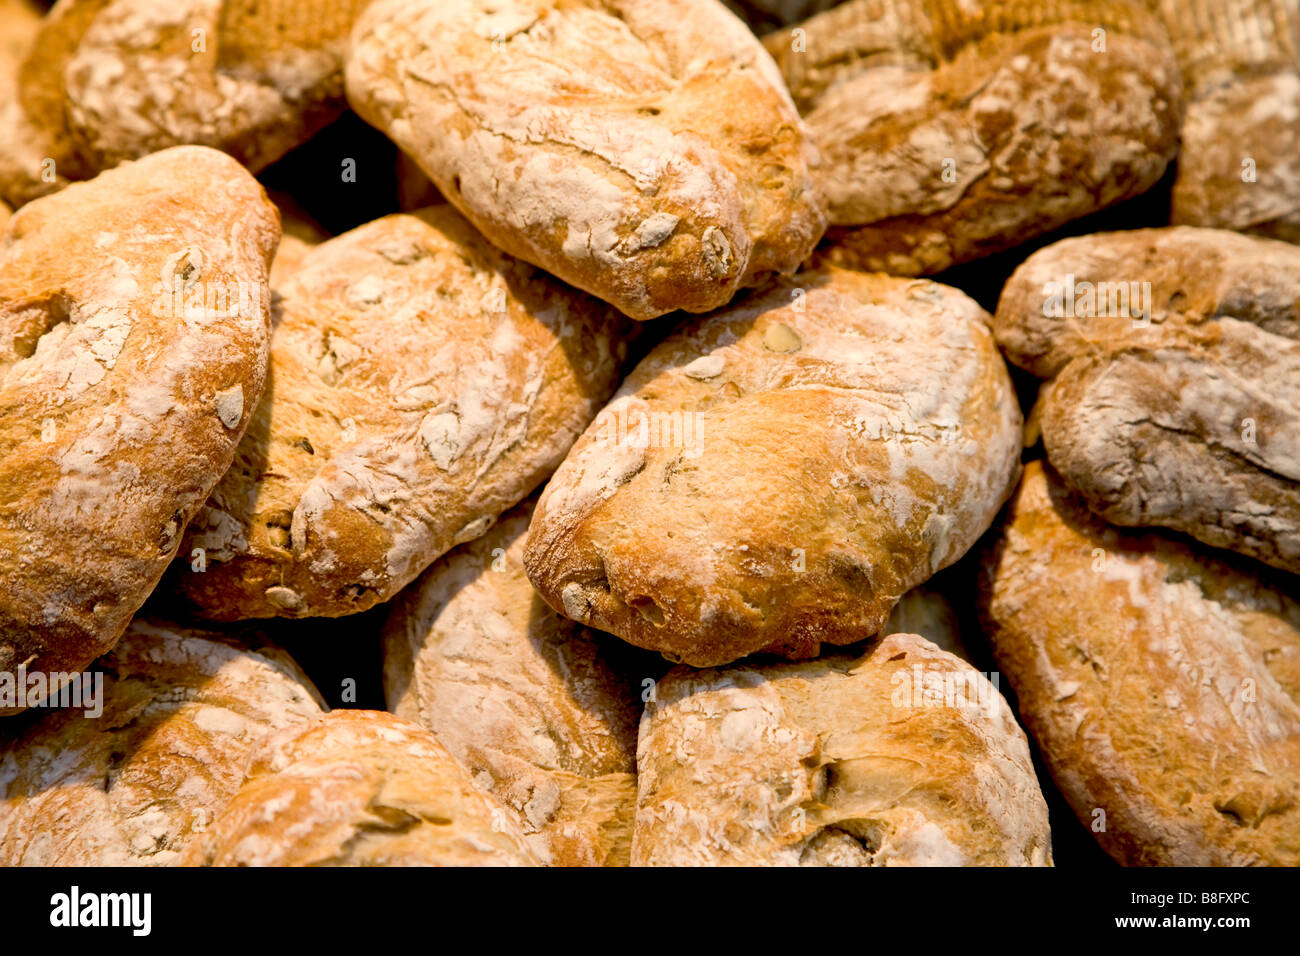 Heap of bread loaves - Stock Image